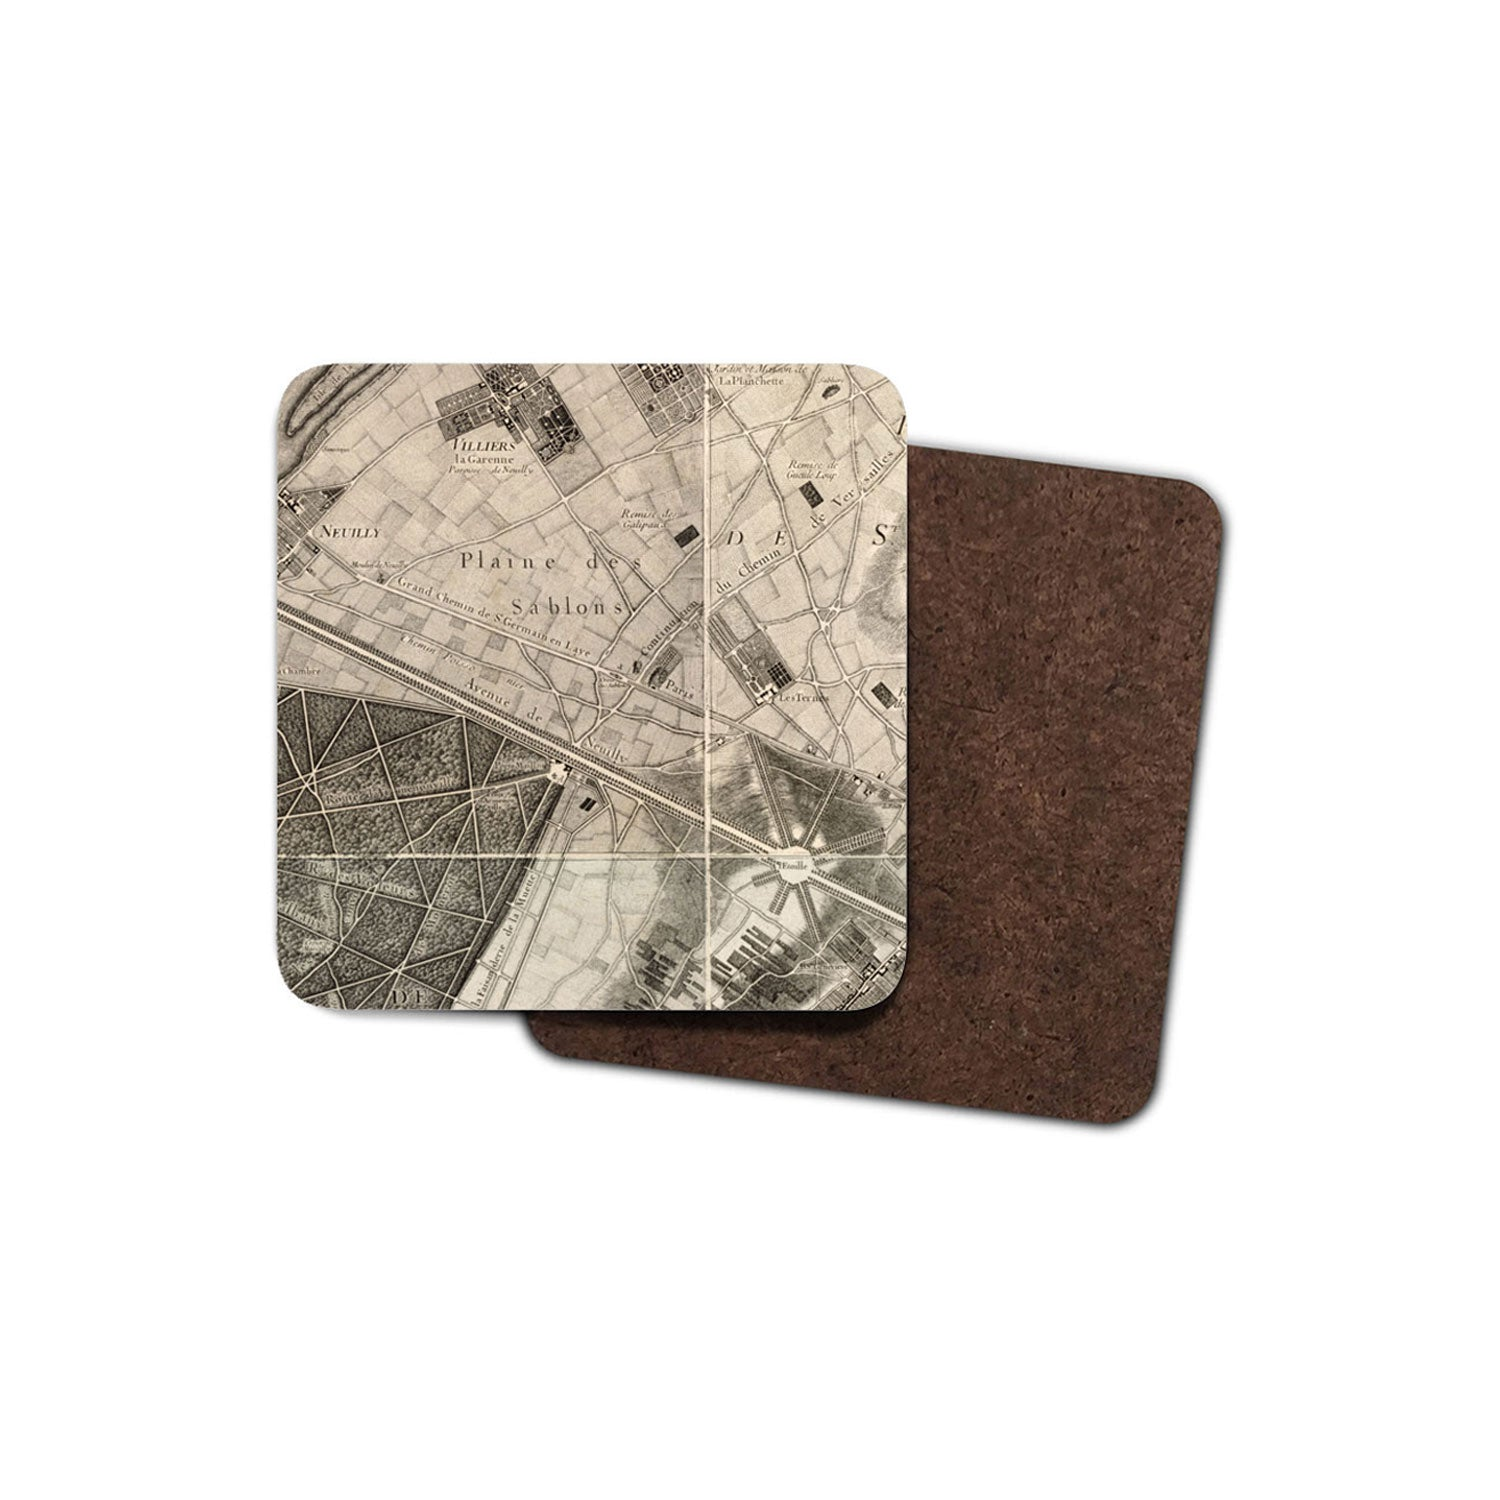 drinks coaster with historic map of paris printed on it